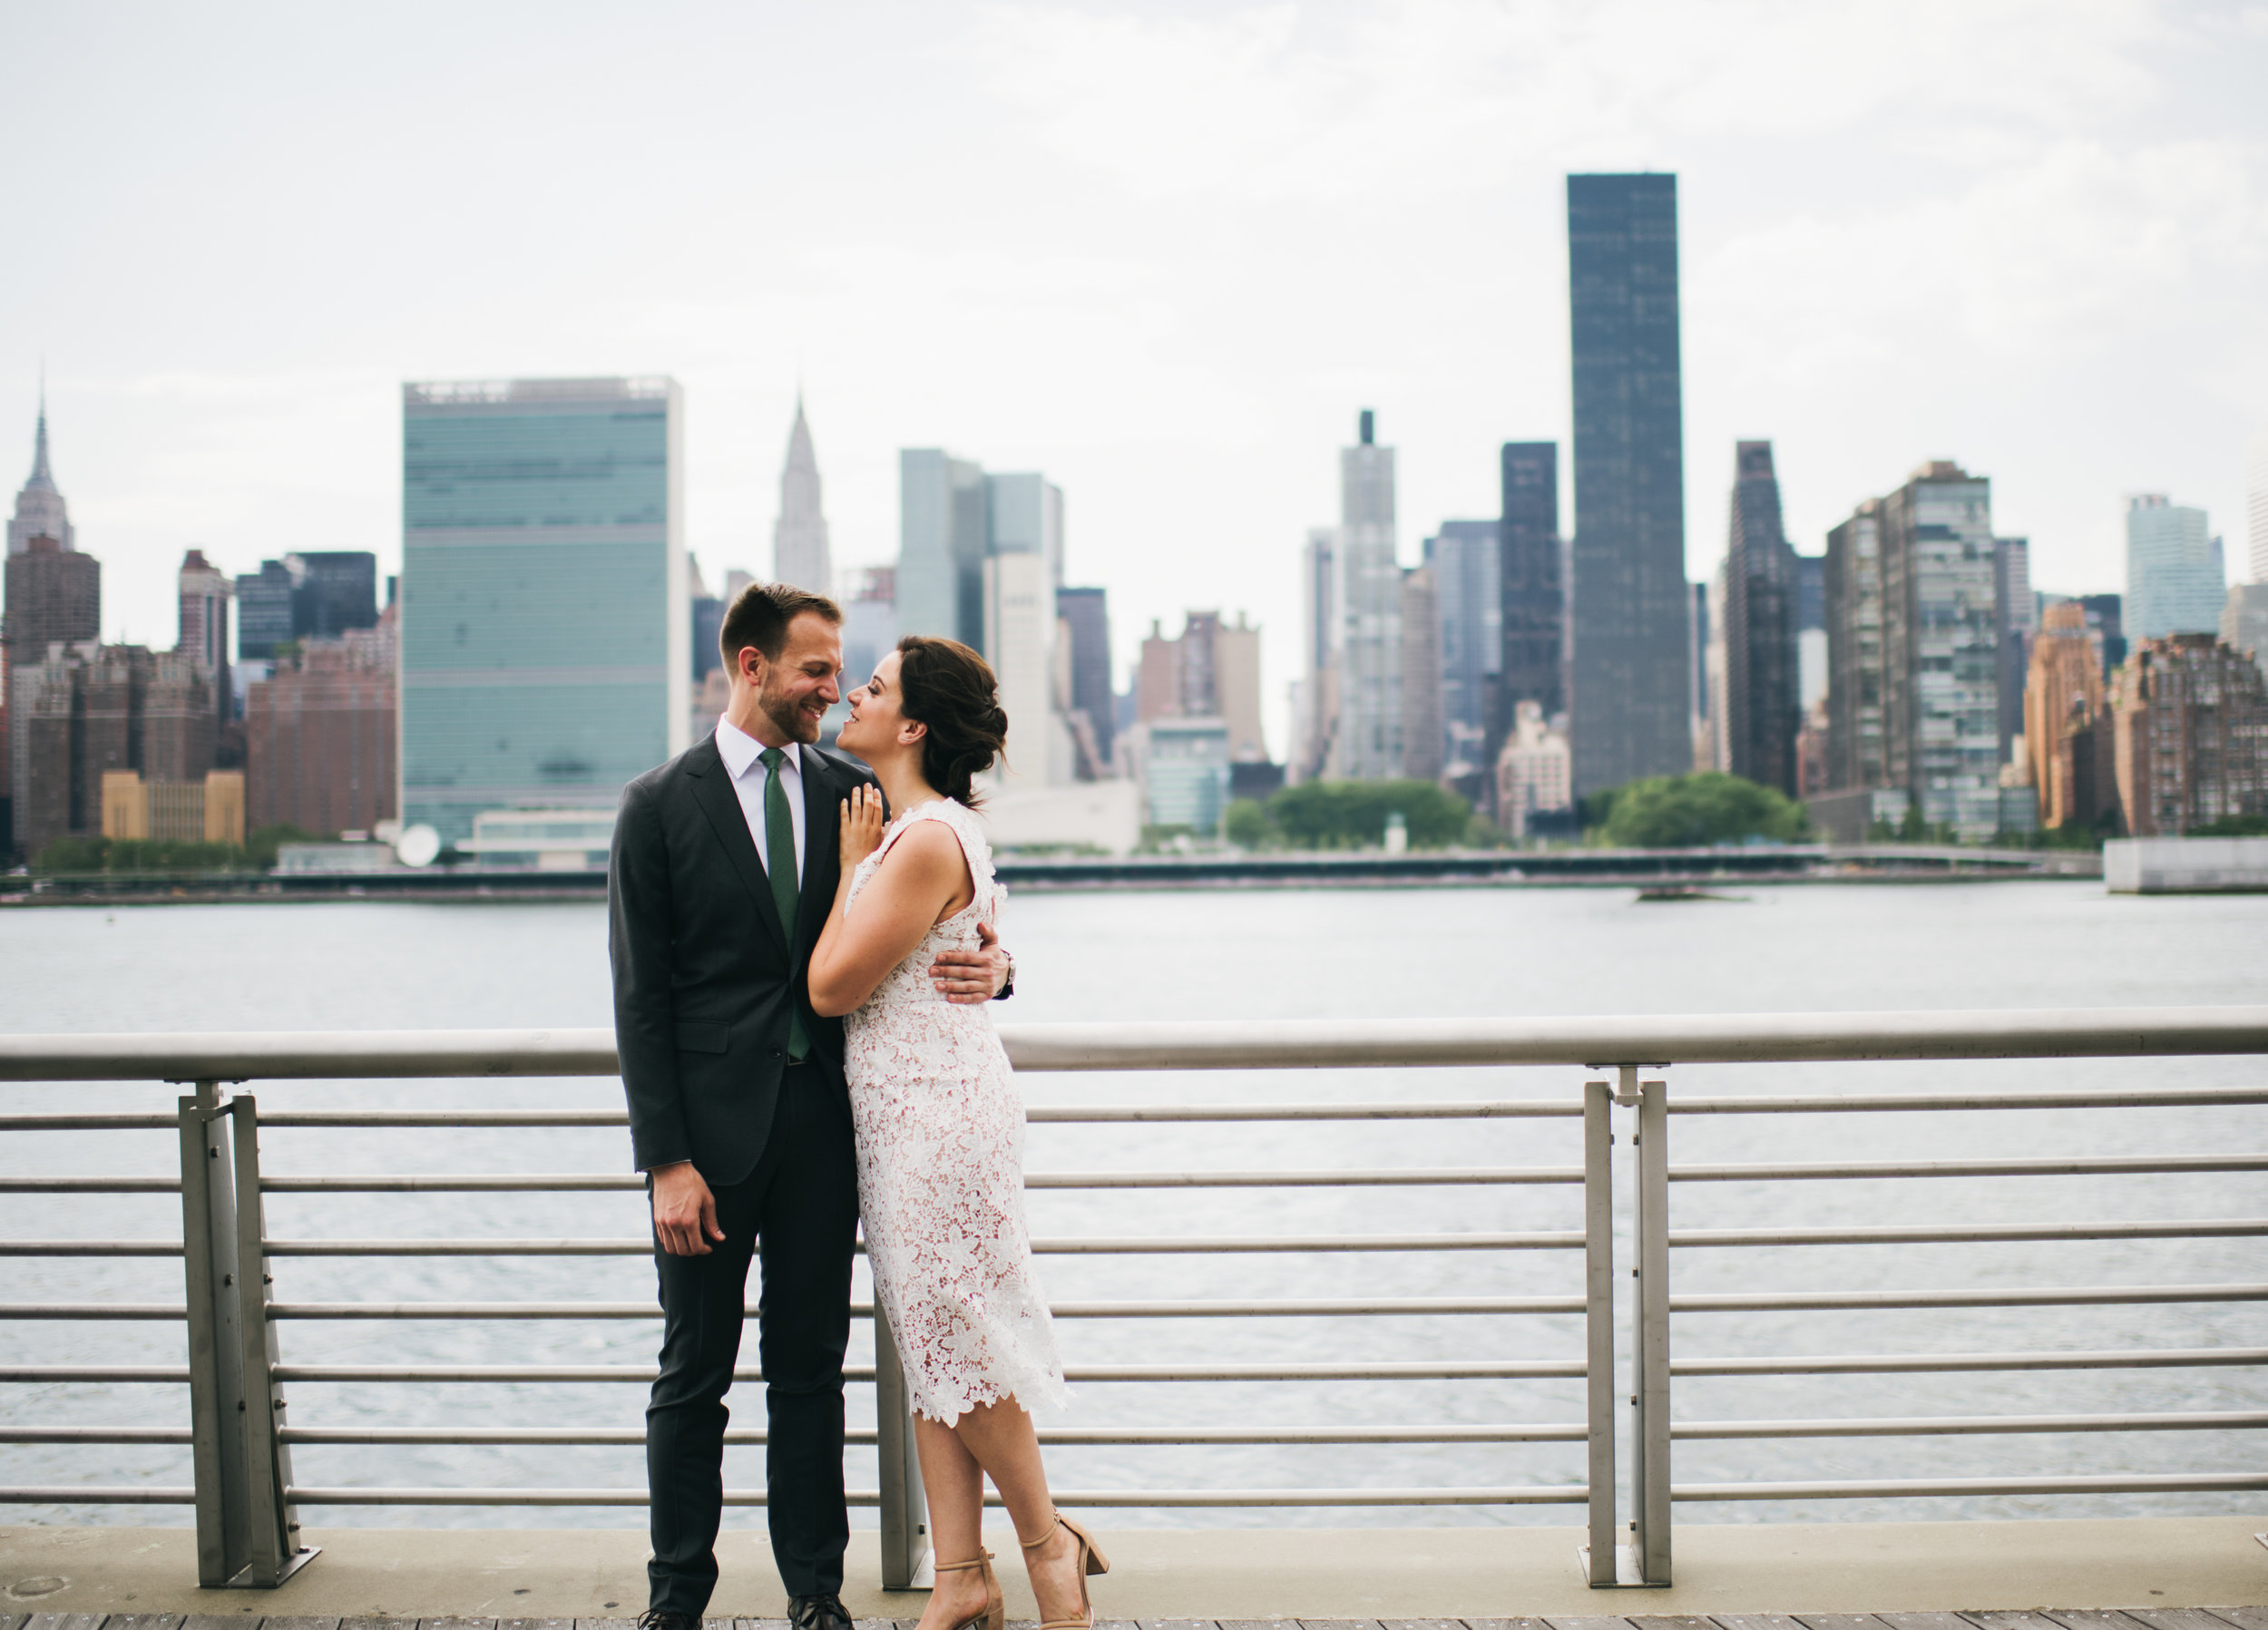 AMANDA & MATT - LE FANFARE NYC - INTIMATE WEDDING PHOTOGRAPHER by CHI-CHI ARI-186.jpg